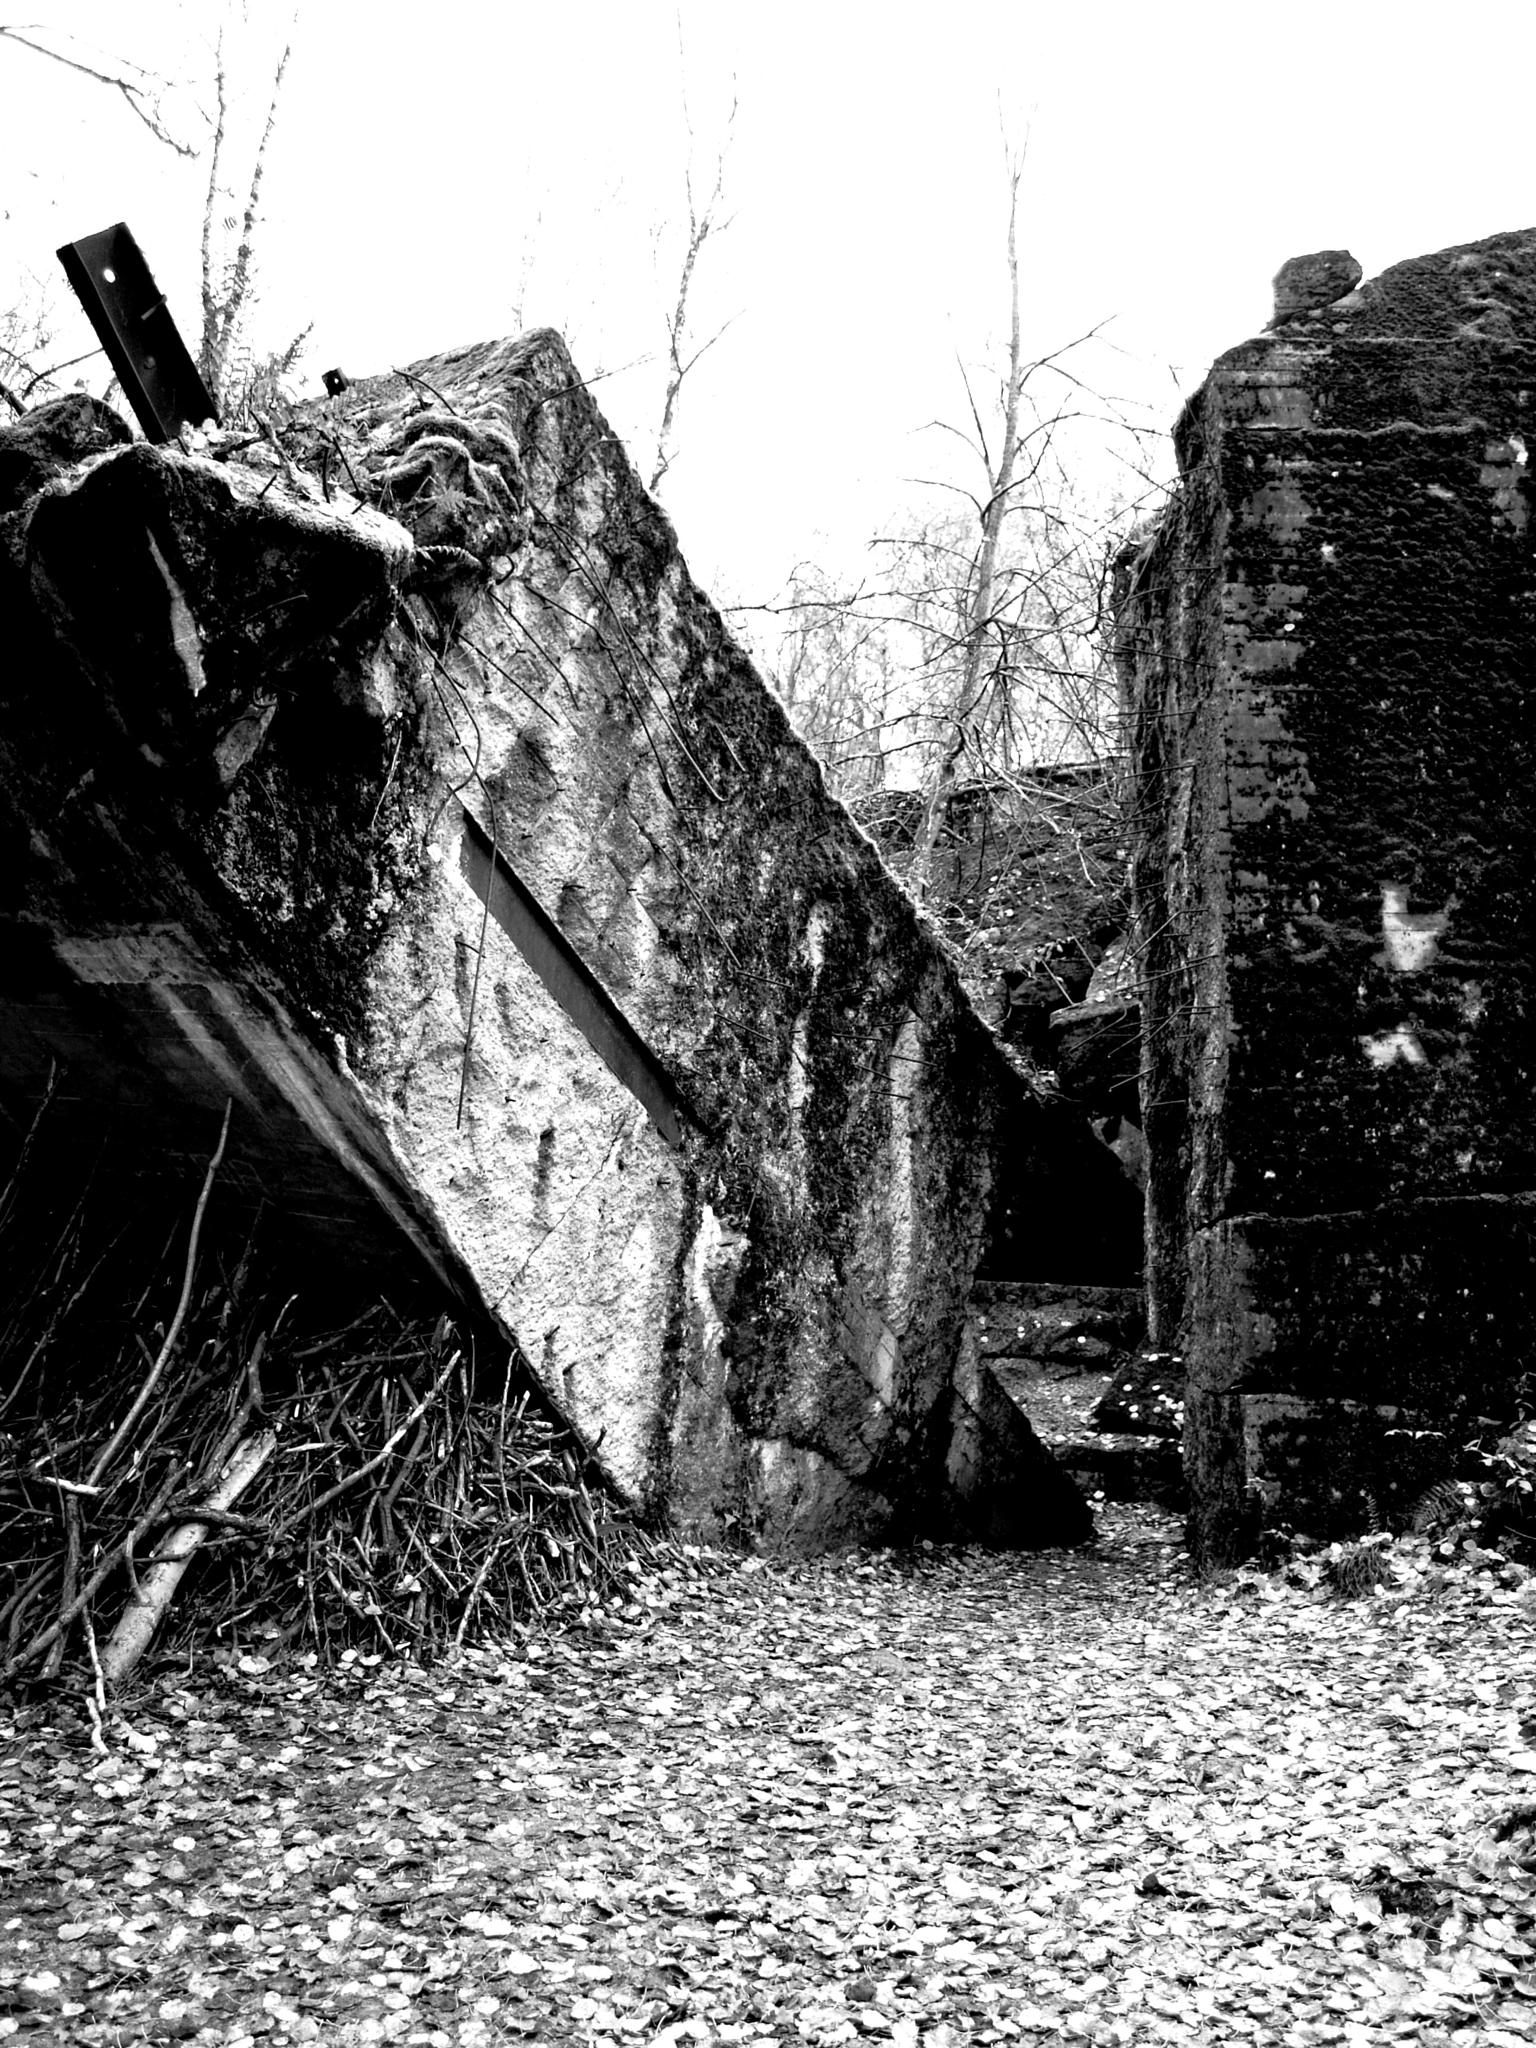 The Wolf's Lair (Hitler's Bunkers, Poland) by Rom Pasika